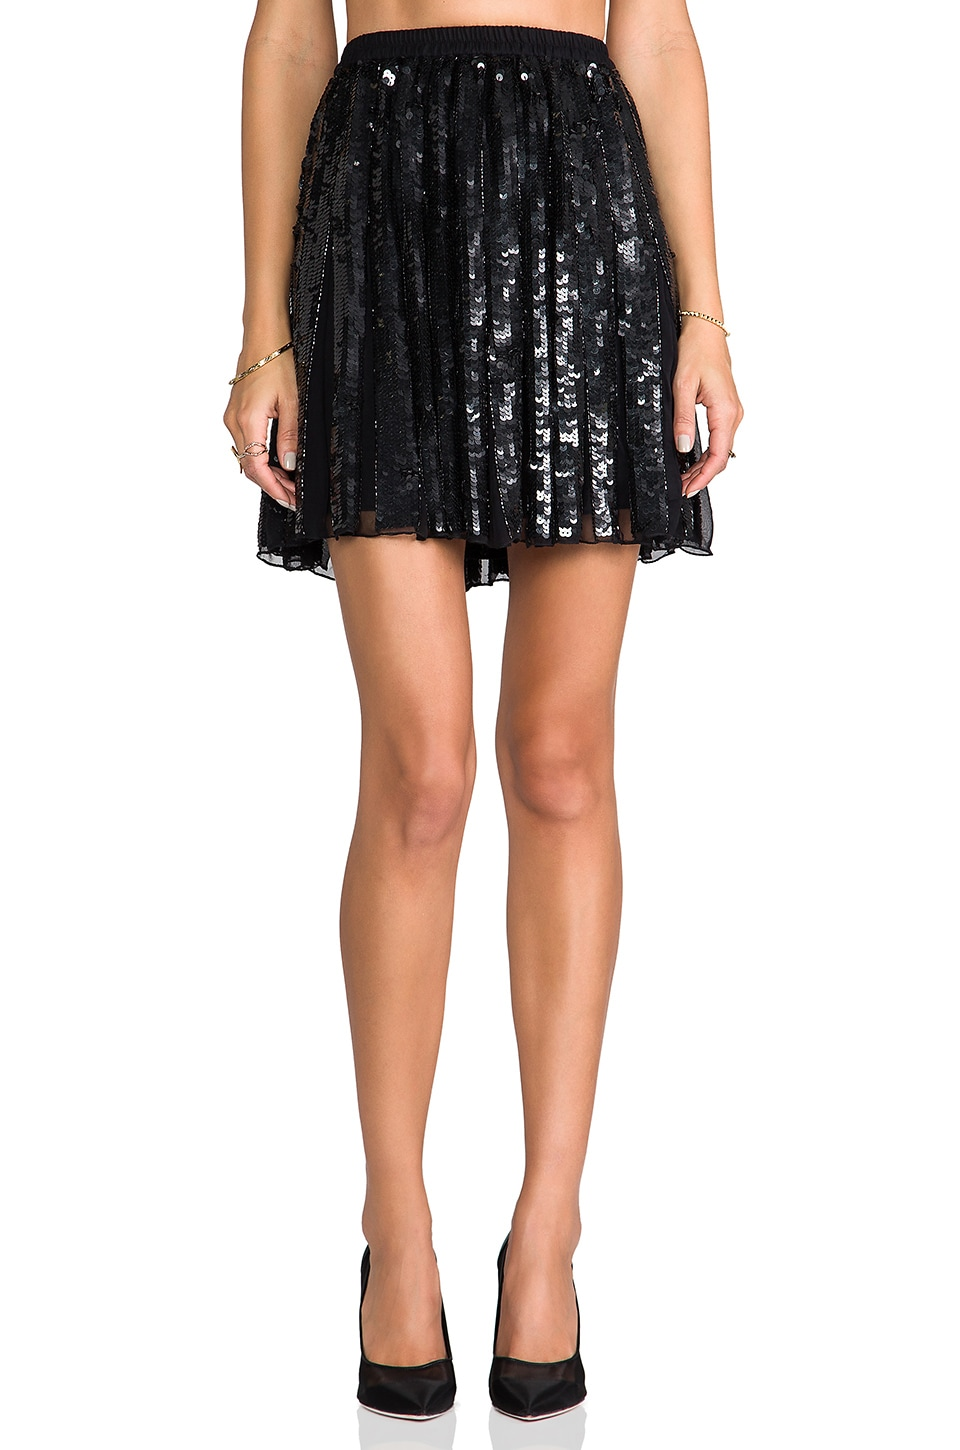 Parker Sequin Delphine Skirt in Black